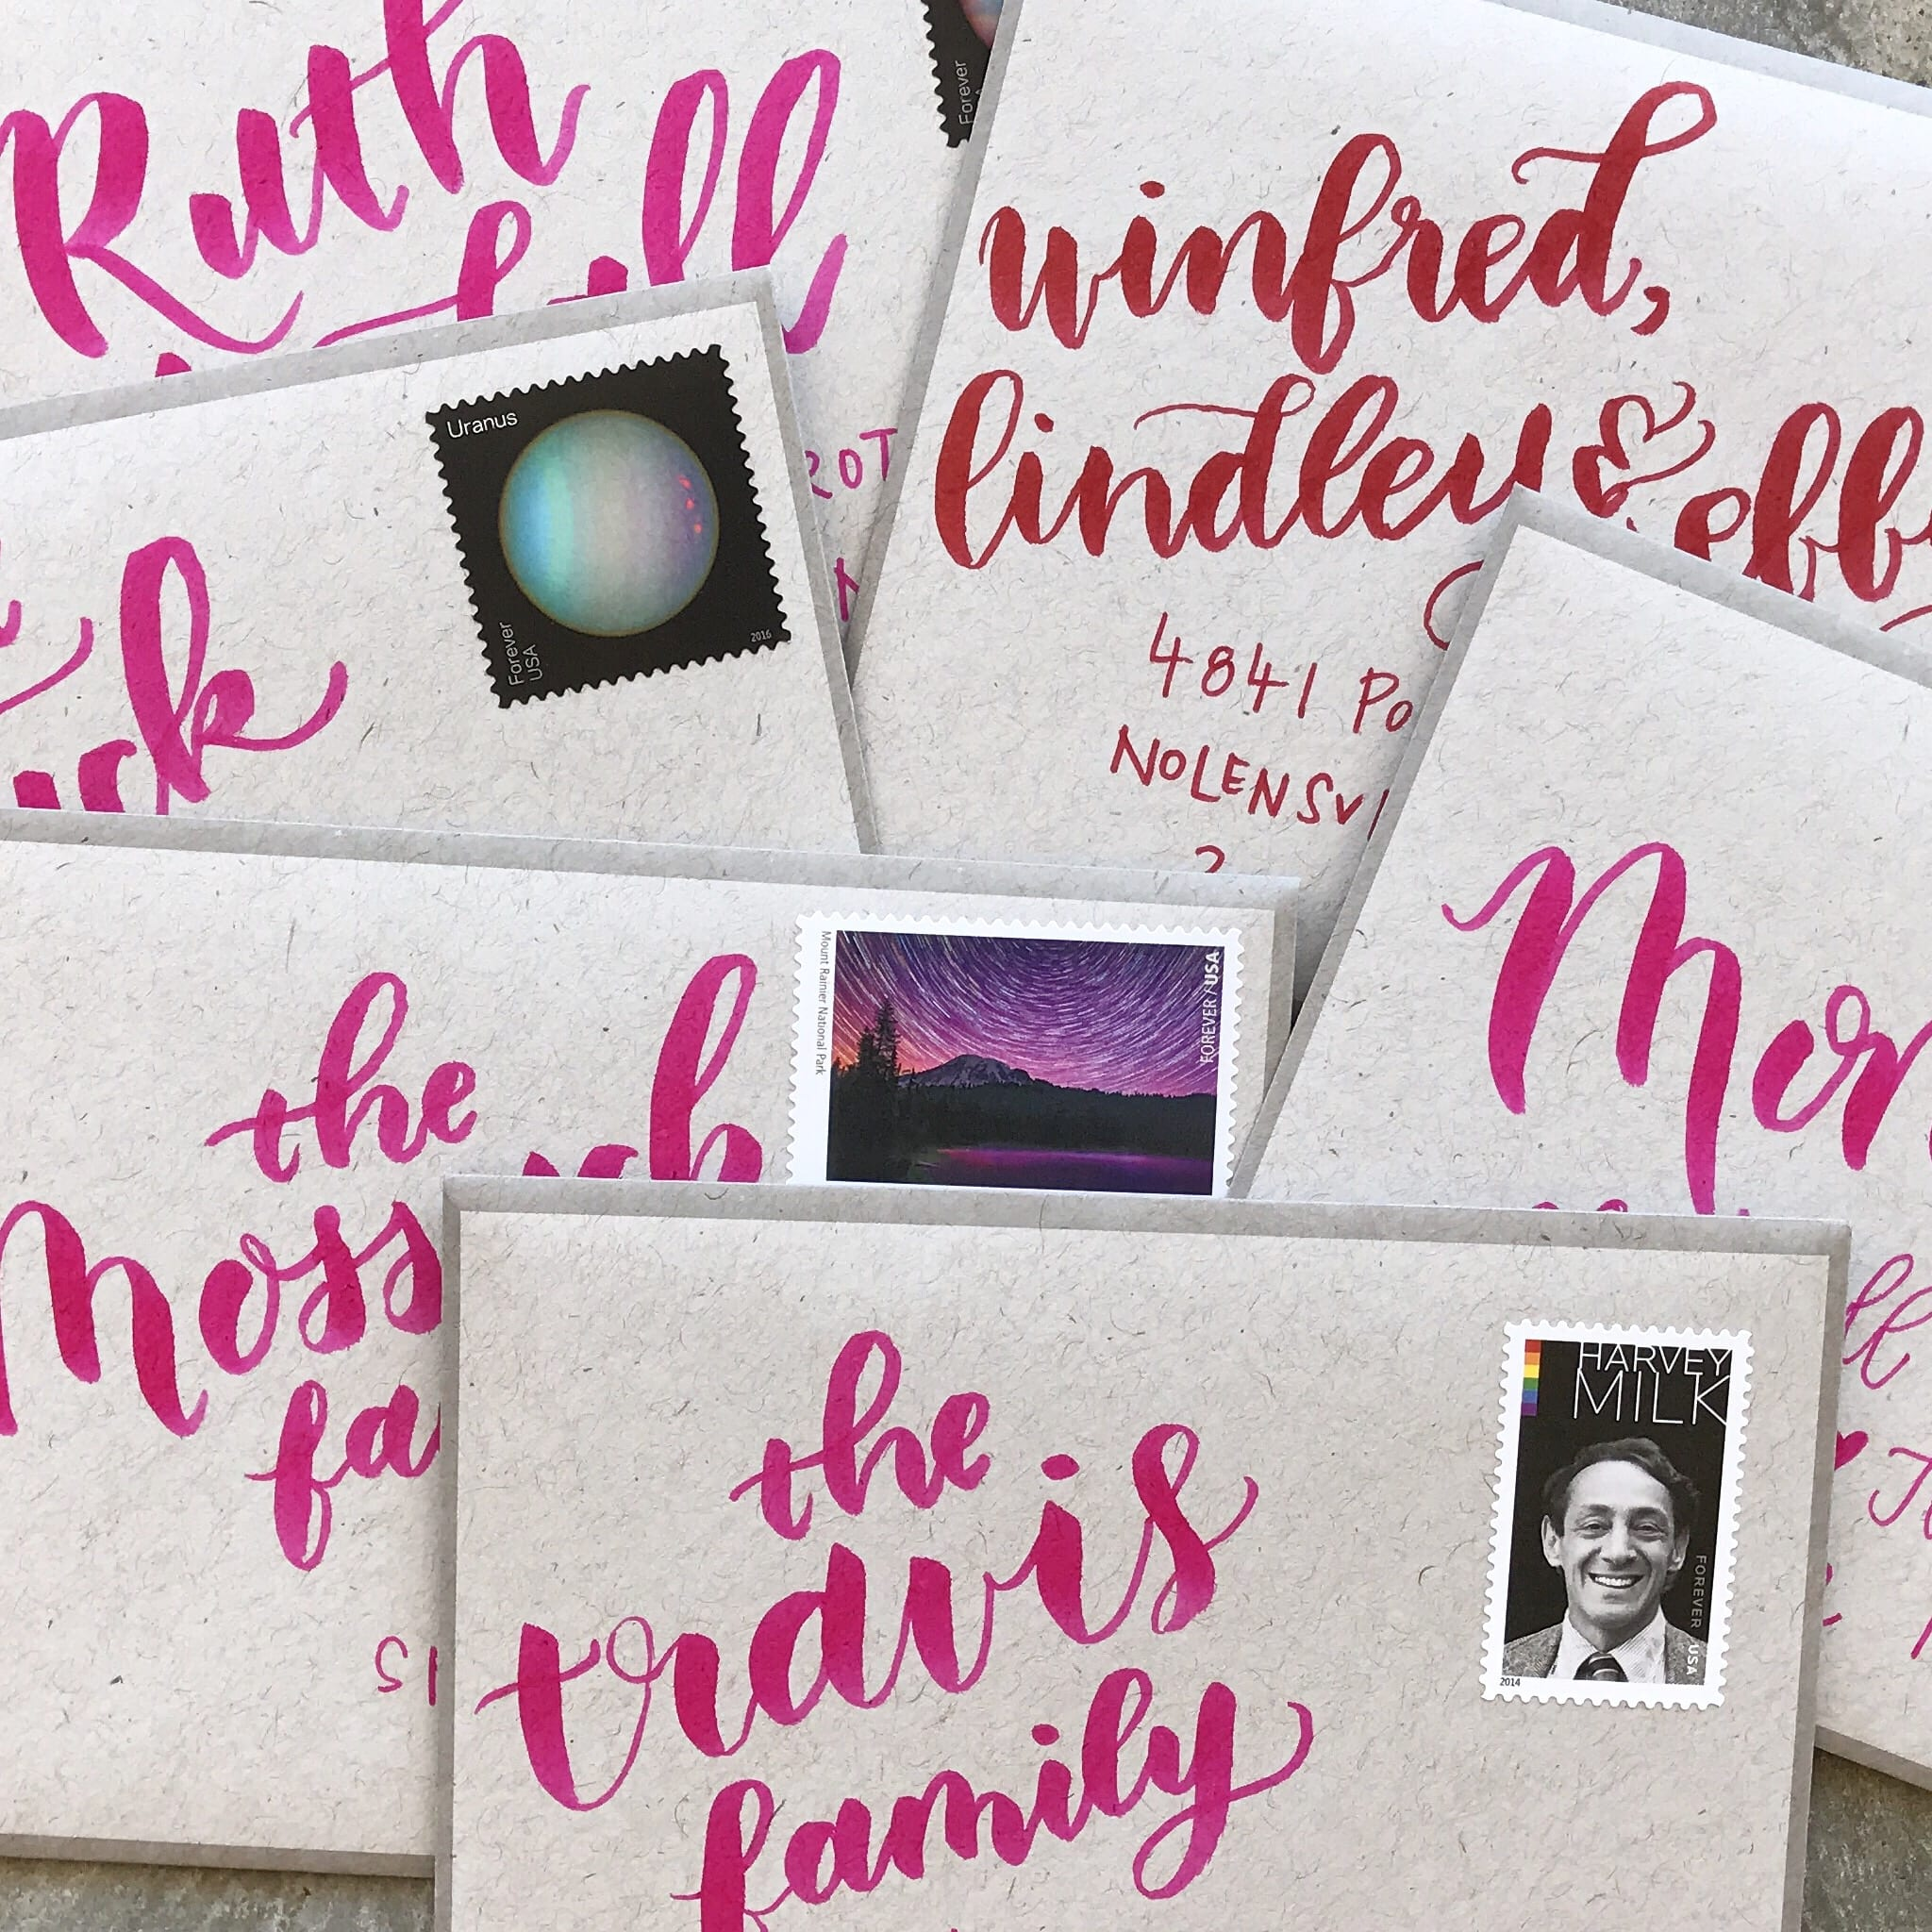 Hot pink brushed lettering on envelopes in a pile.